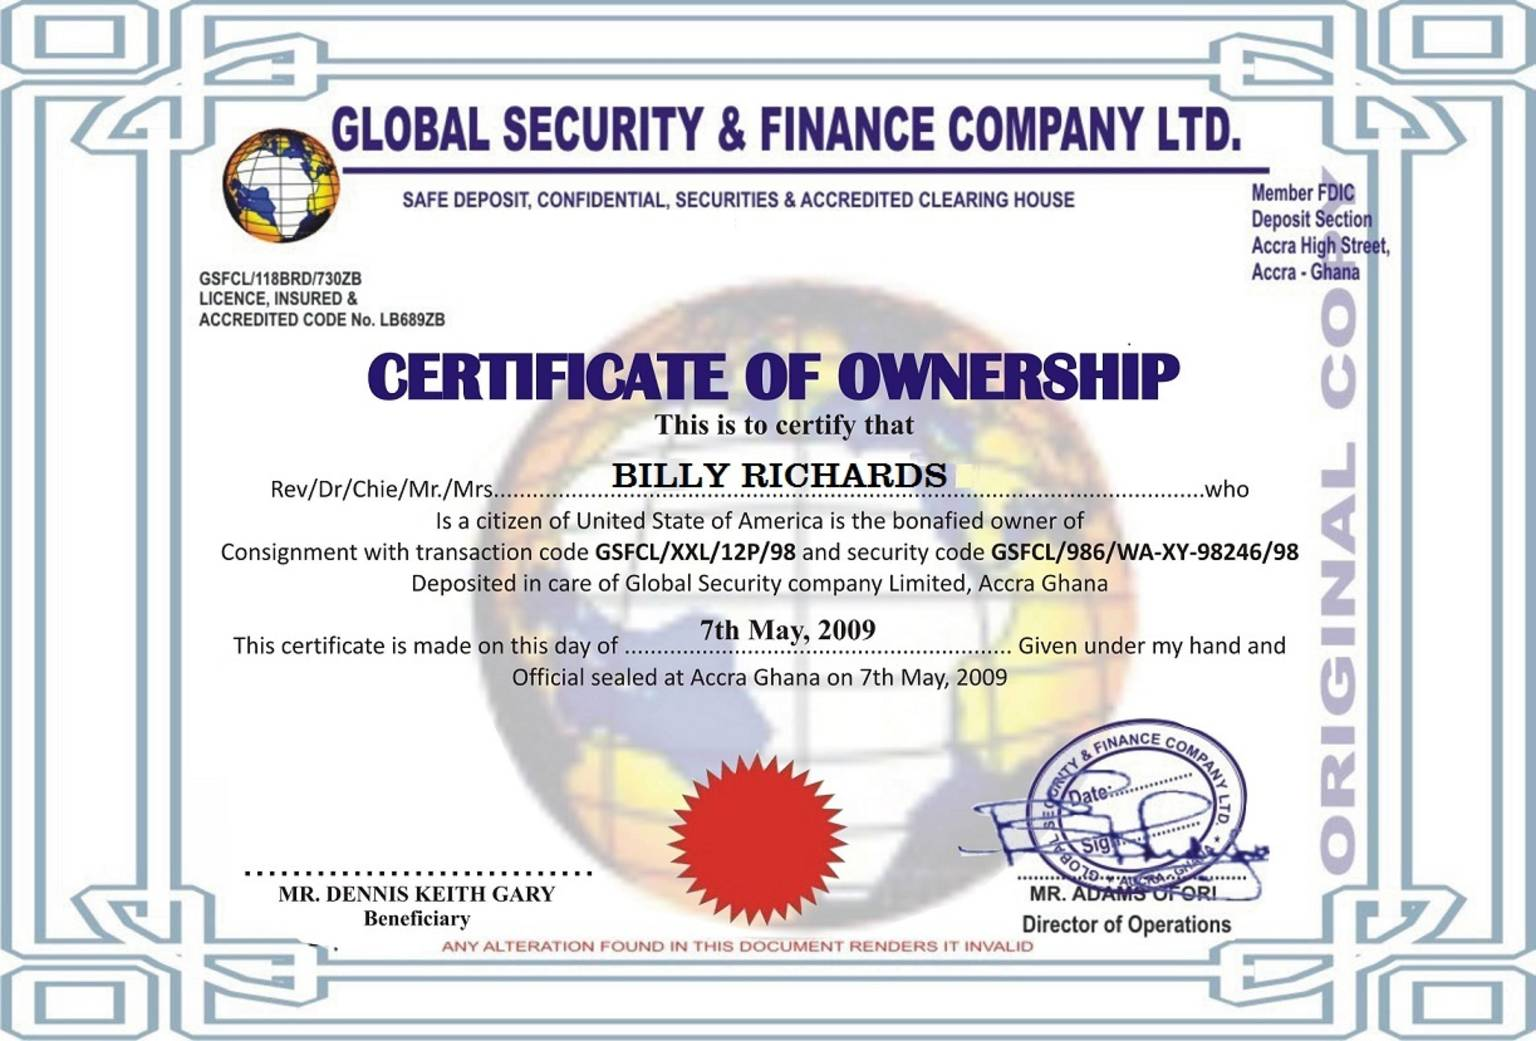 Fake documents exposed certificate of ownership for gold from ghana analysis of certificate of ownership 1betcityfo Images